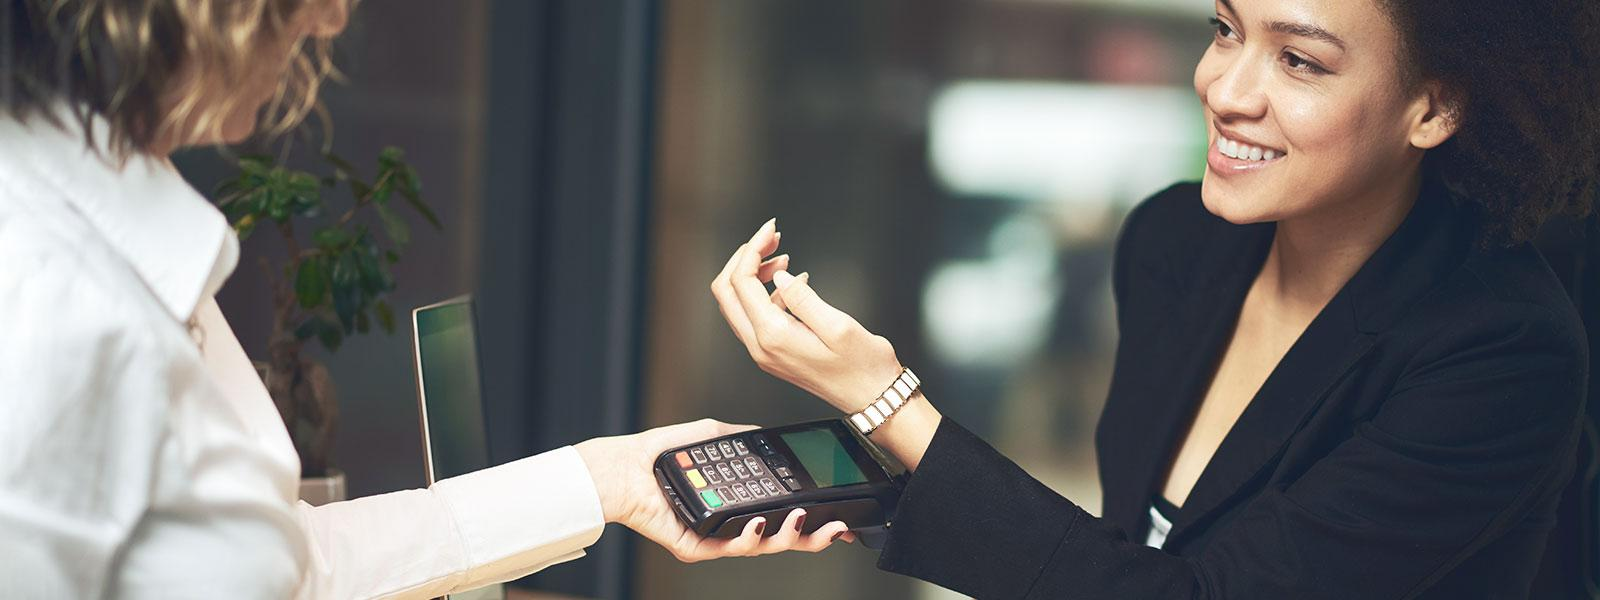 woman makes contactless payment with wearable payment technology (wristband)